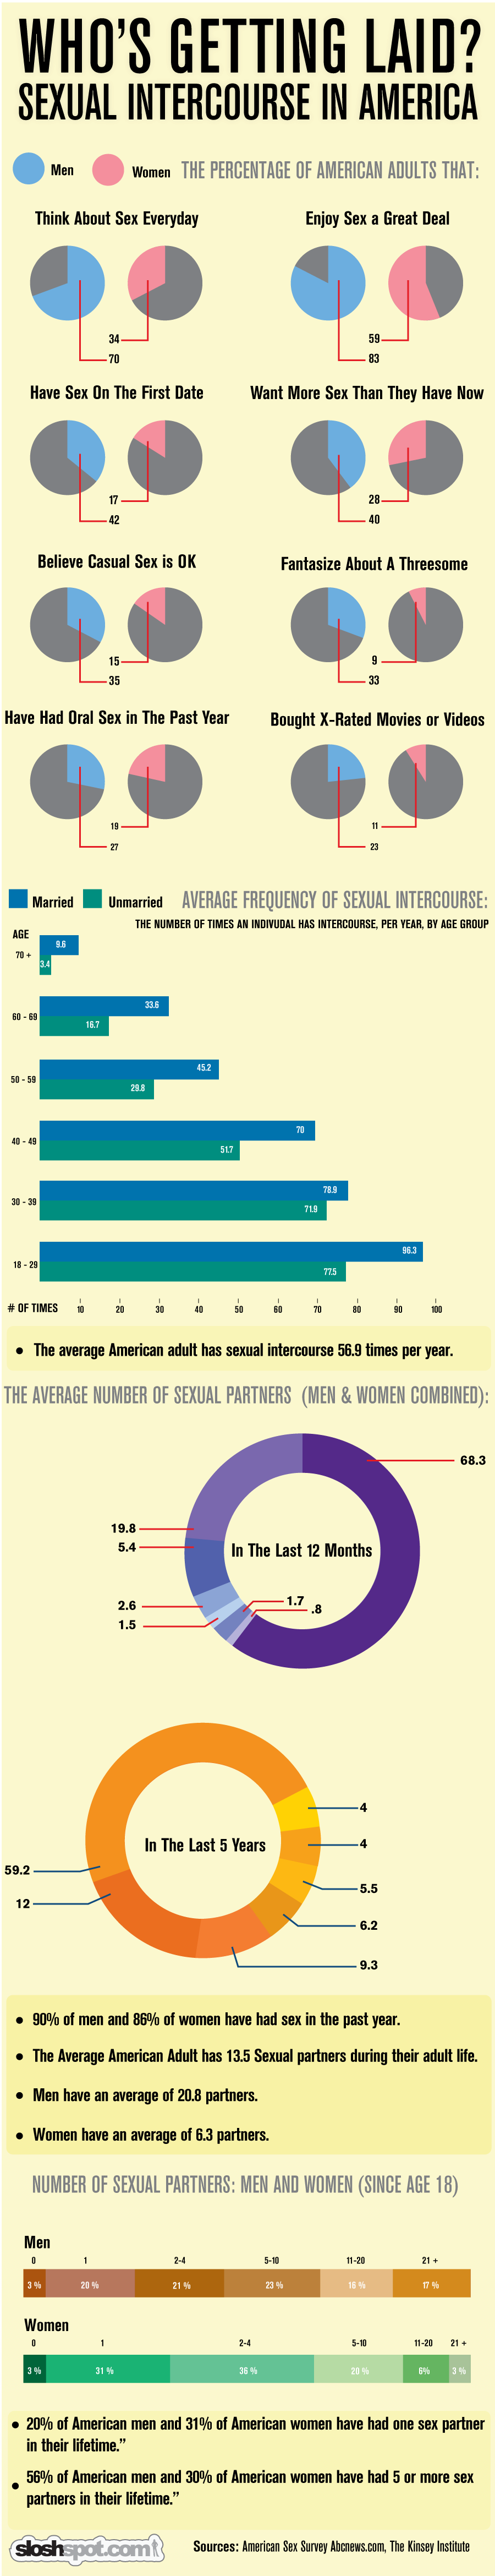 Sexual Intercourse in America Infographic